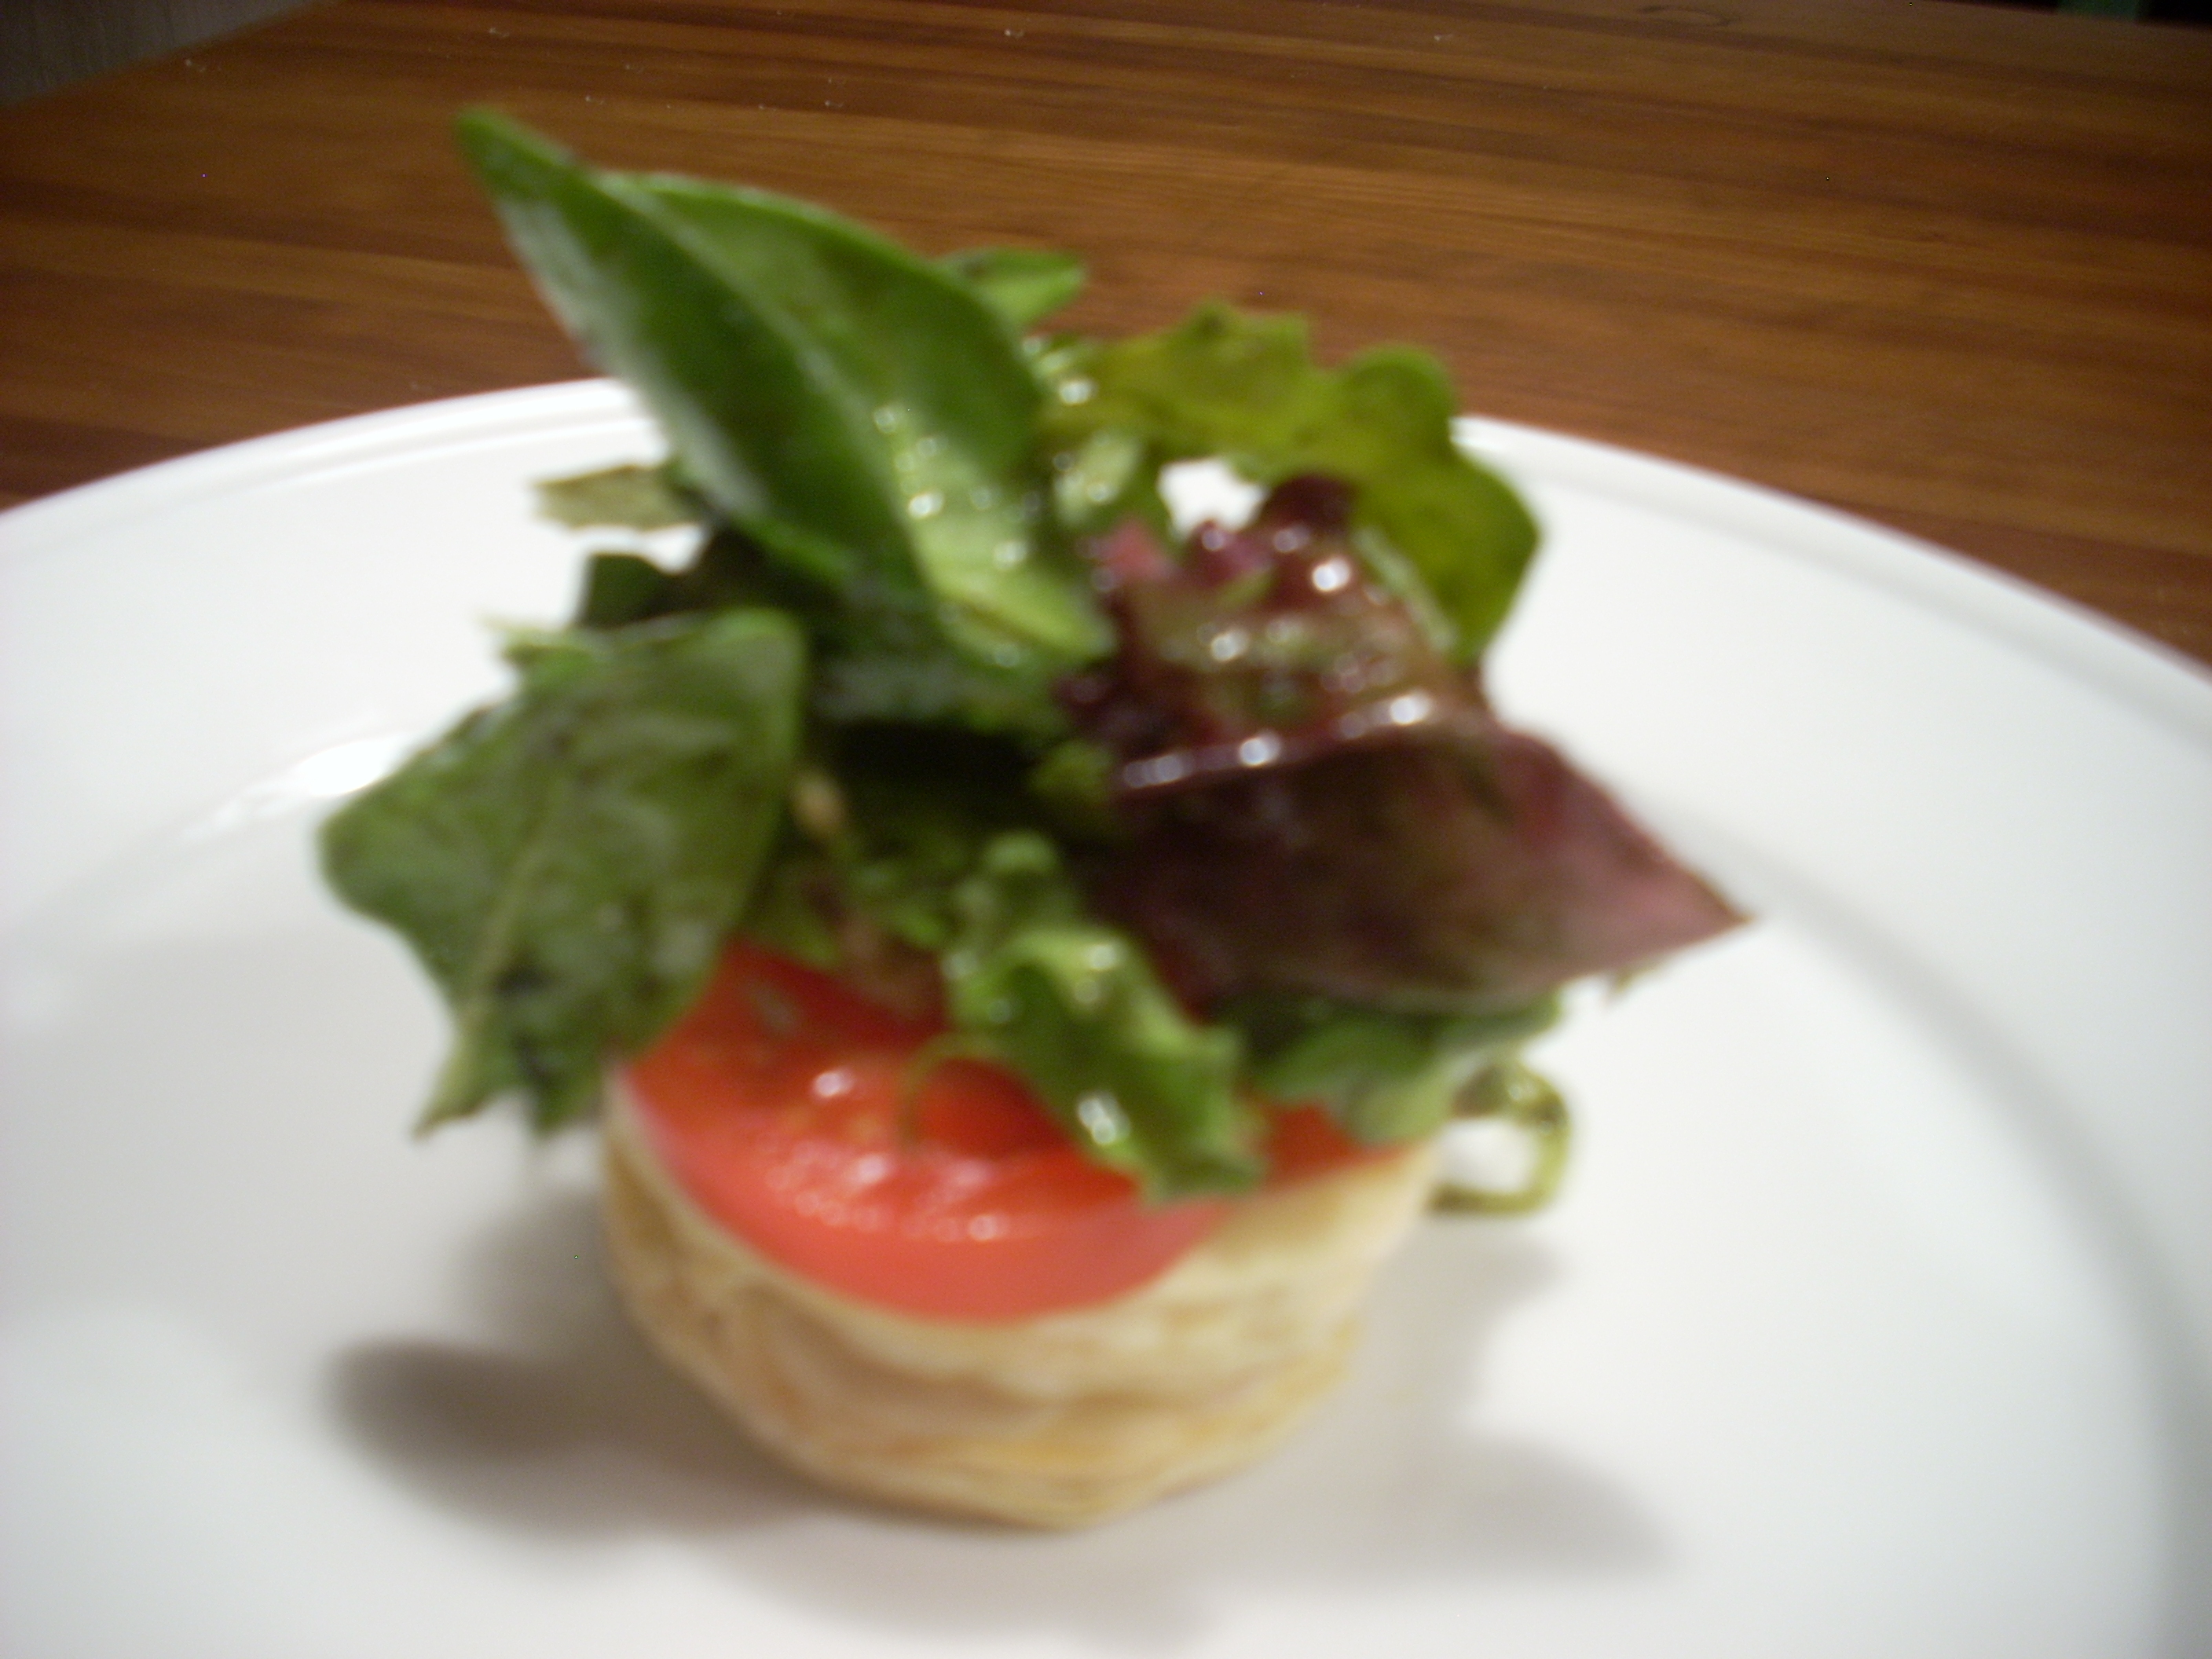 Two Weeks With Thomas Keller Day 11 Heirloom Tomato Tart